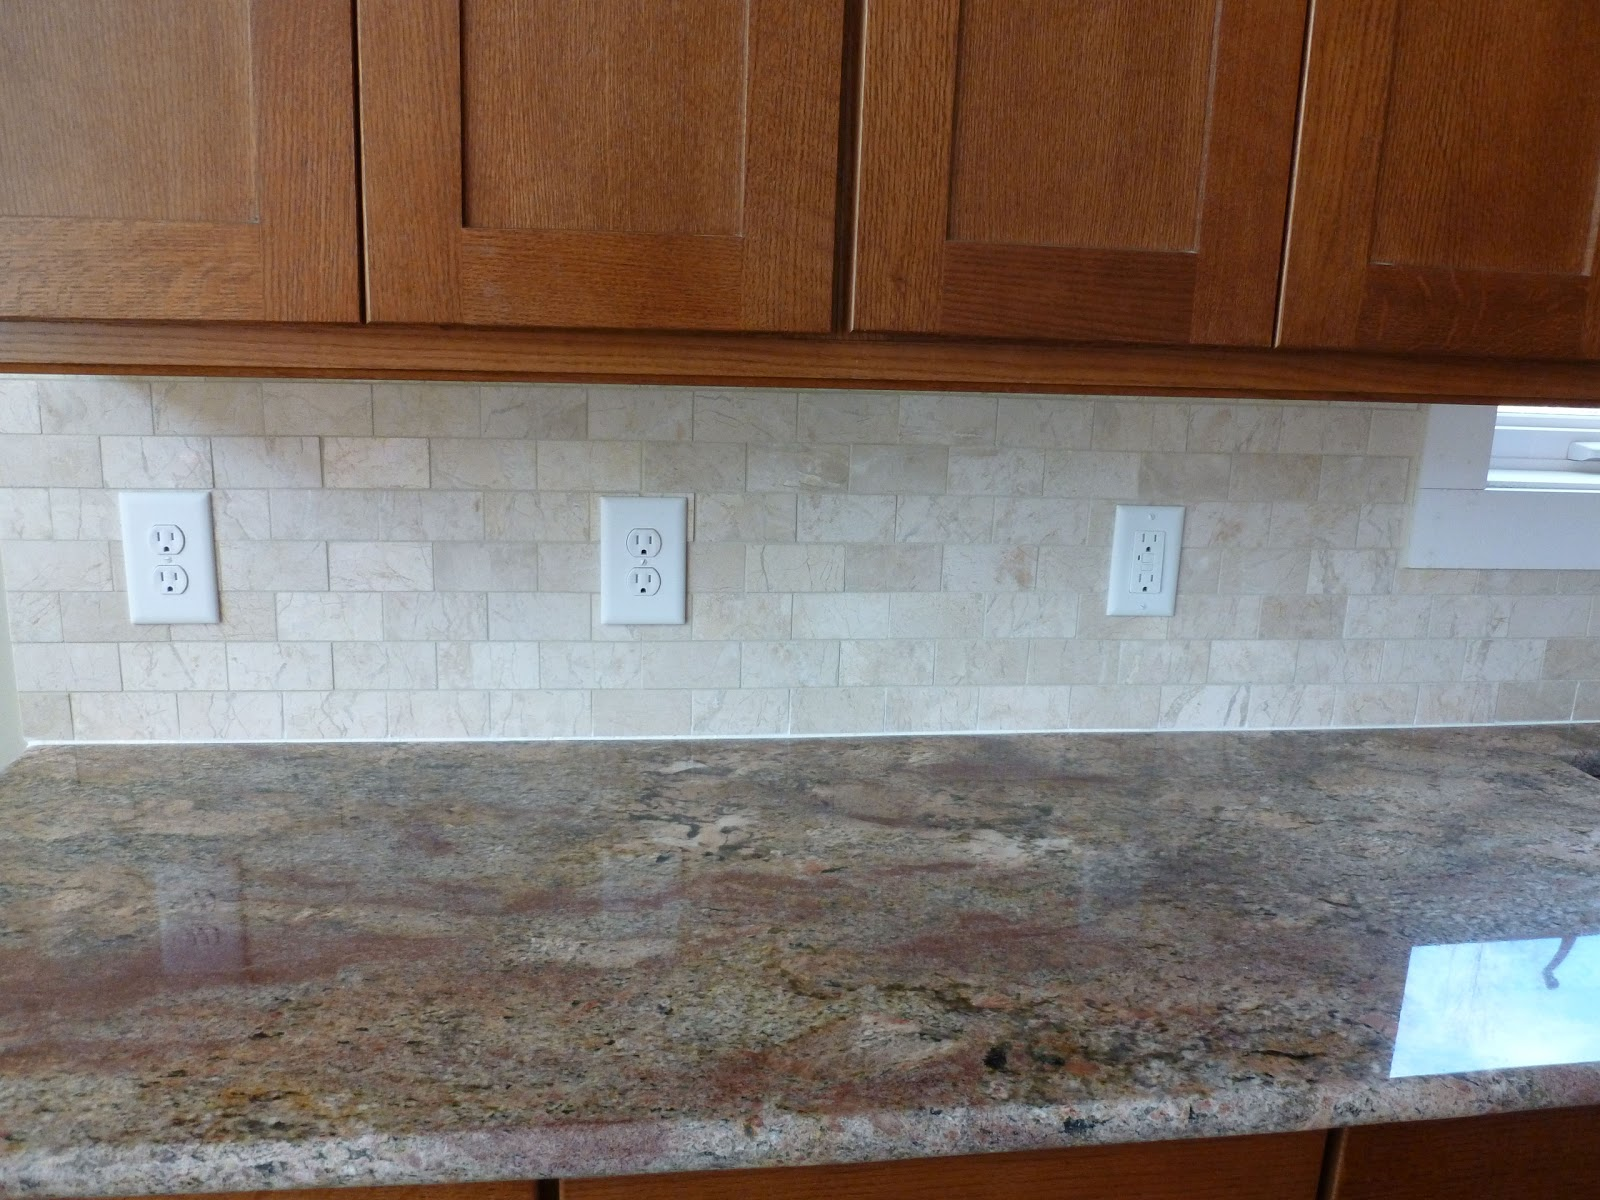 Bob and flora 39 s new house - Backsplash design ...